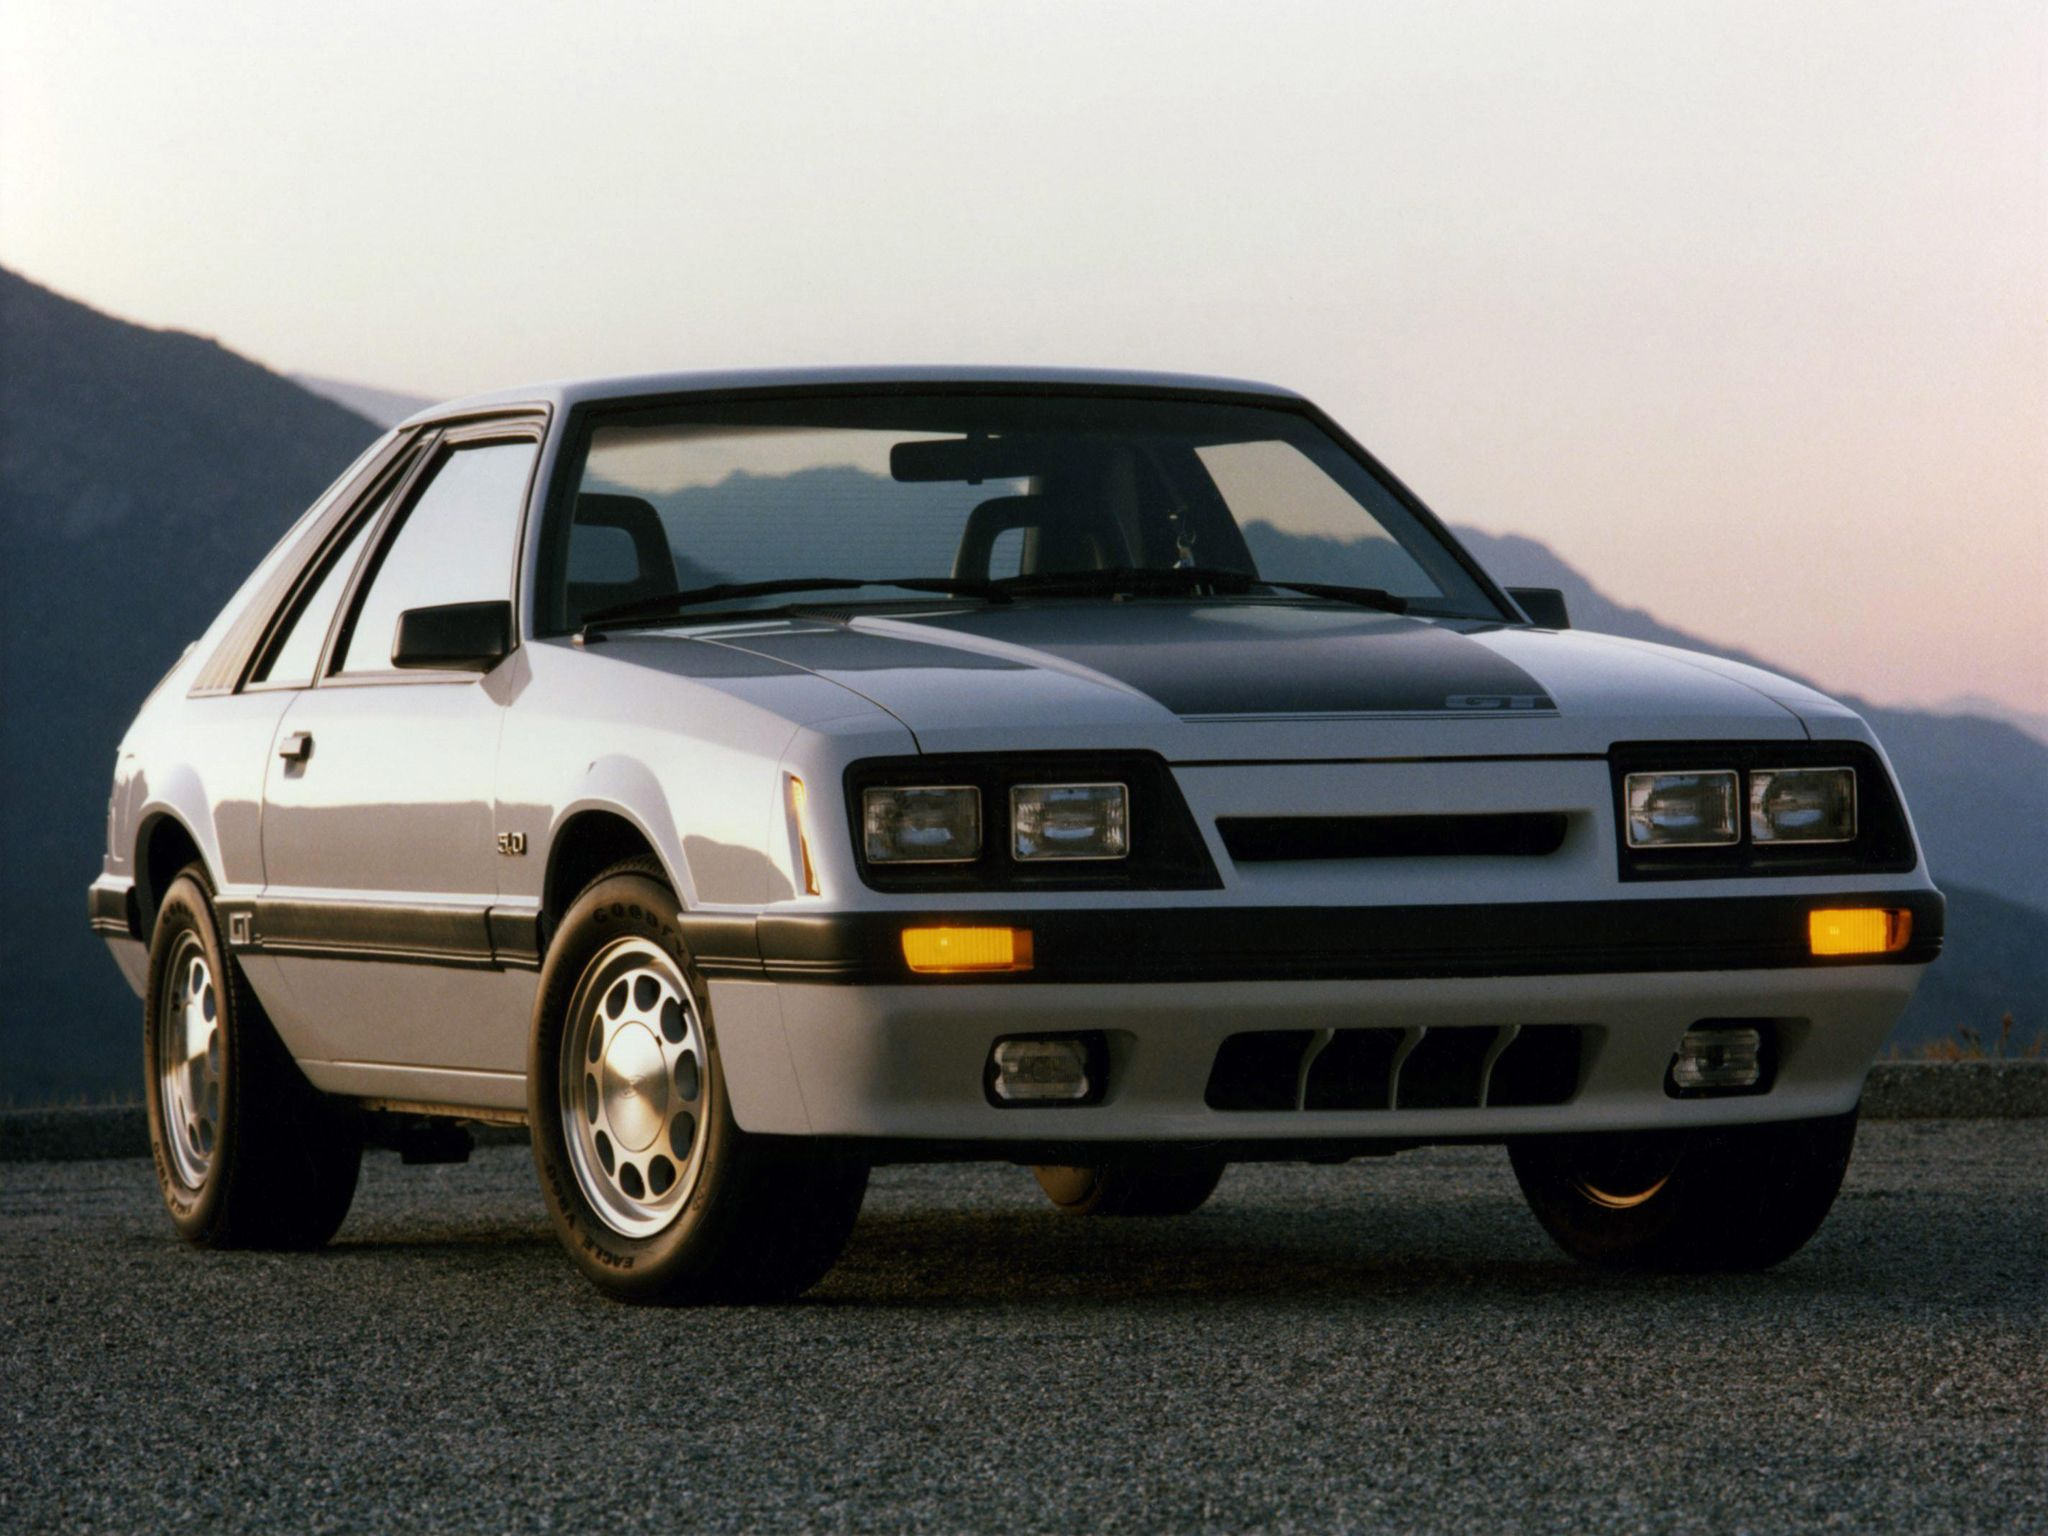 1985 Ford Mustang GT 5 0 Purchased new in February 1985 Medium